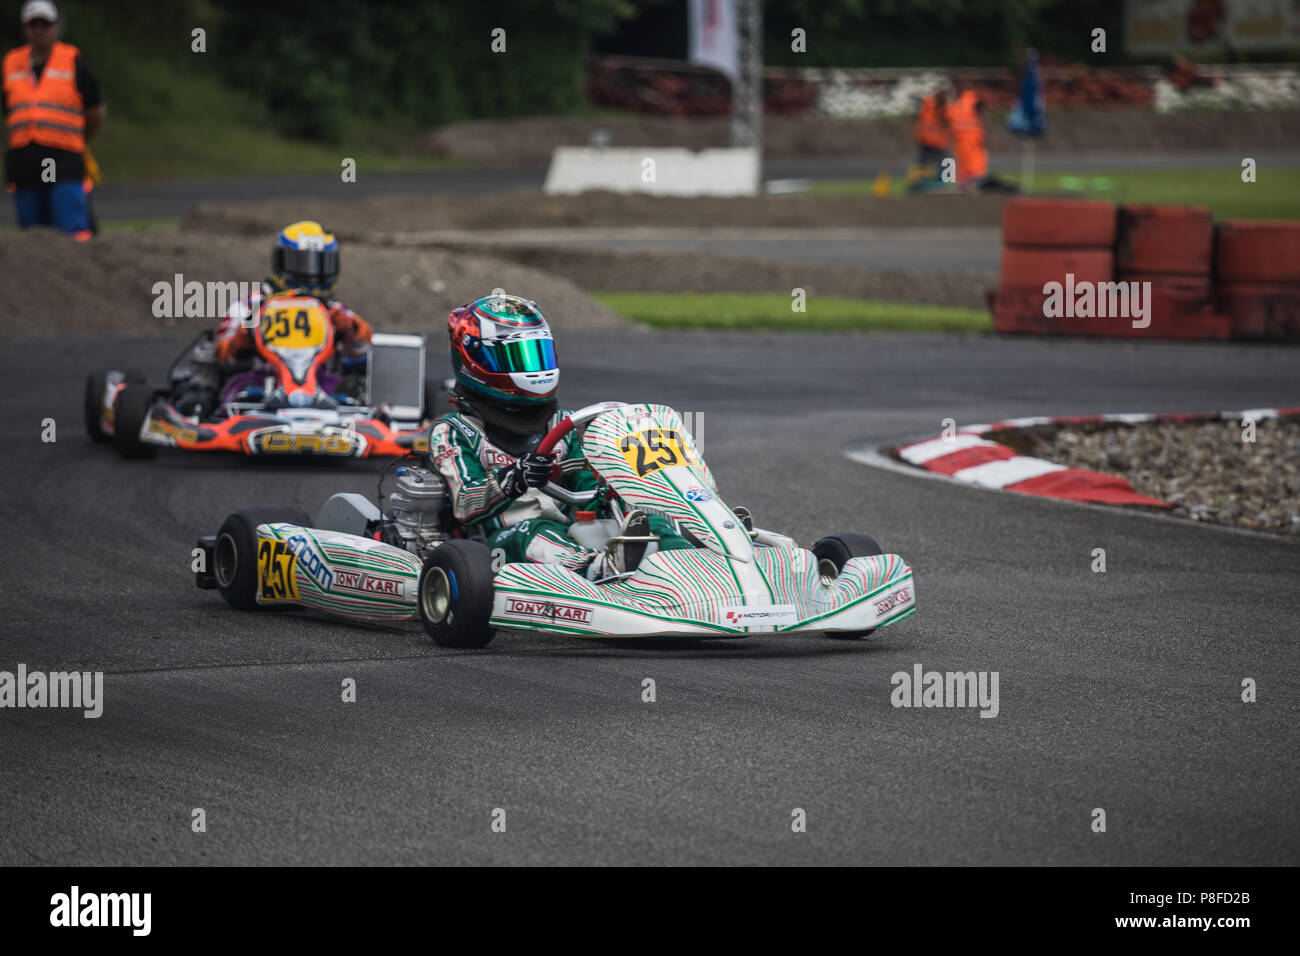 xc30 junior and ok junior Go Kart Racer on the Track, Swiss